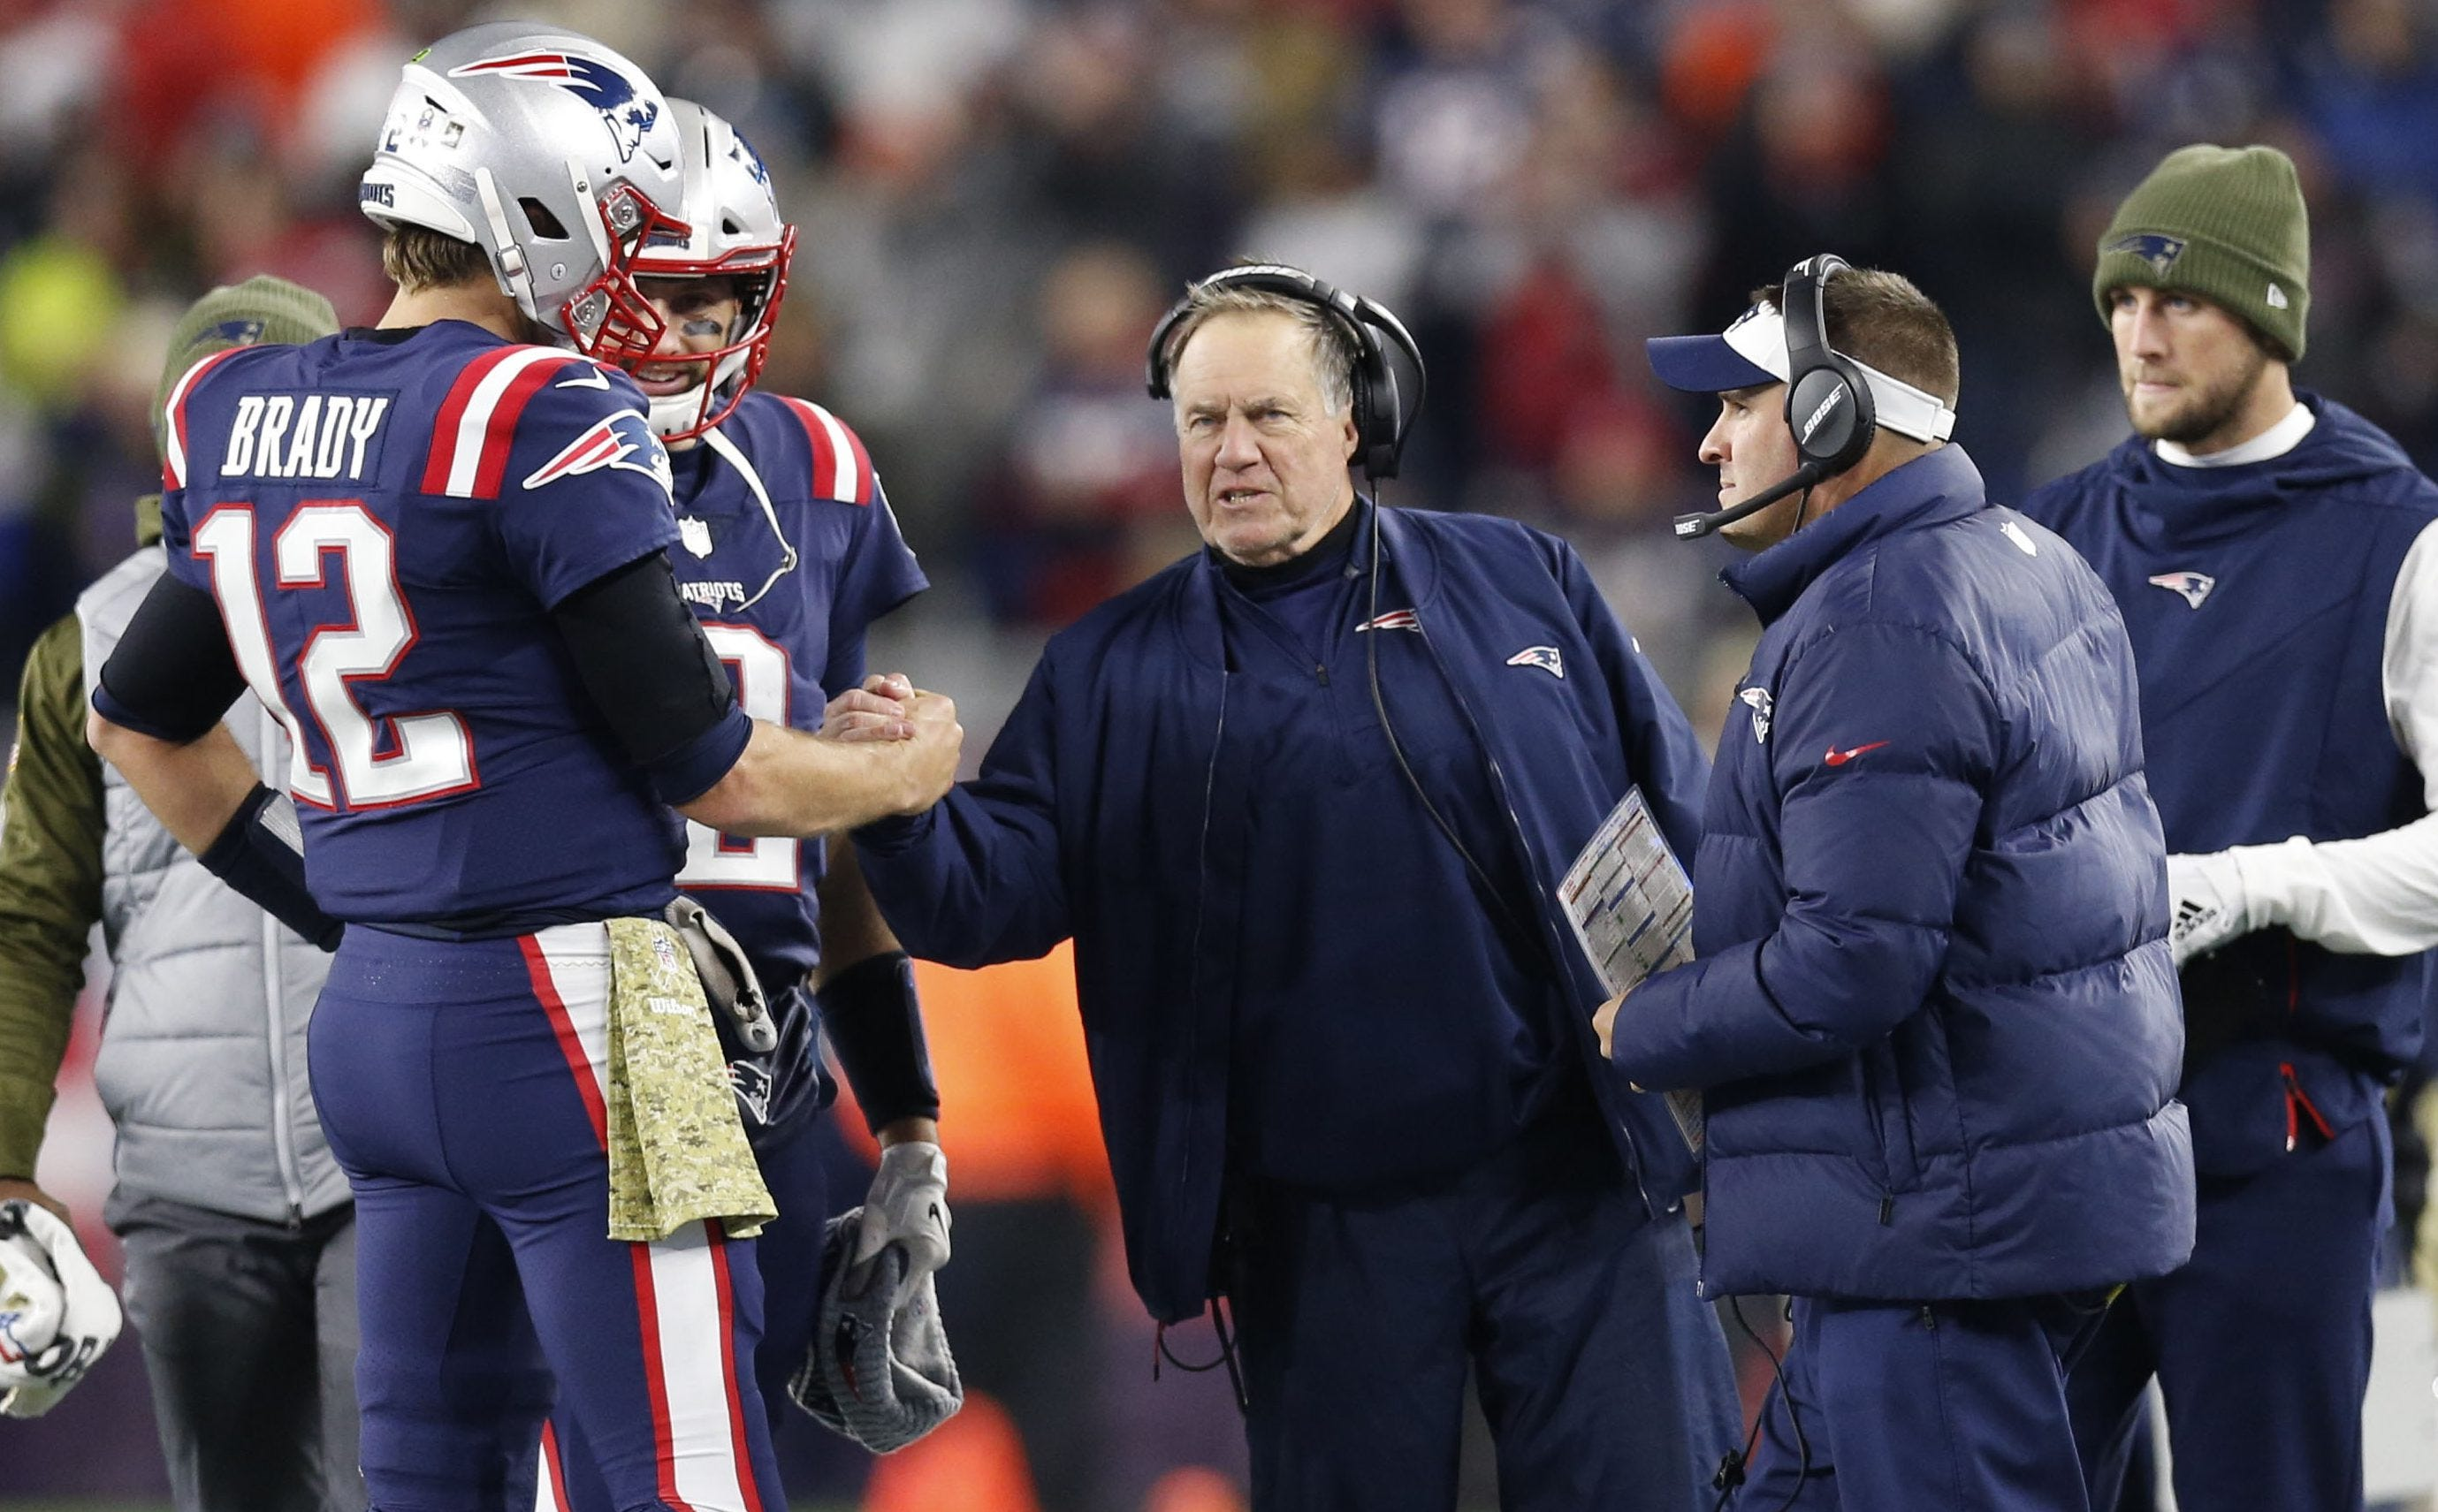 NFL Week 9 Takeaways: Bill Belichick proves once again he is the greatest of all time